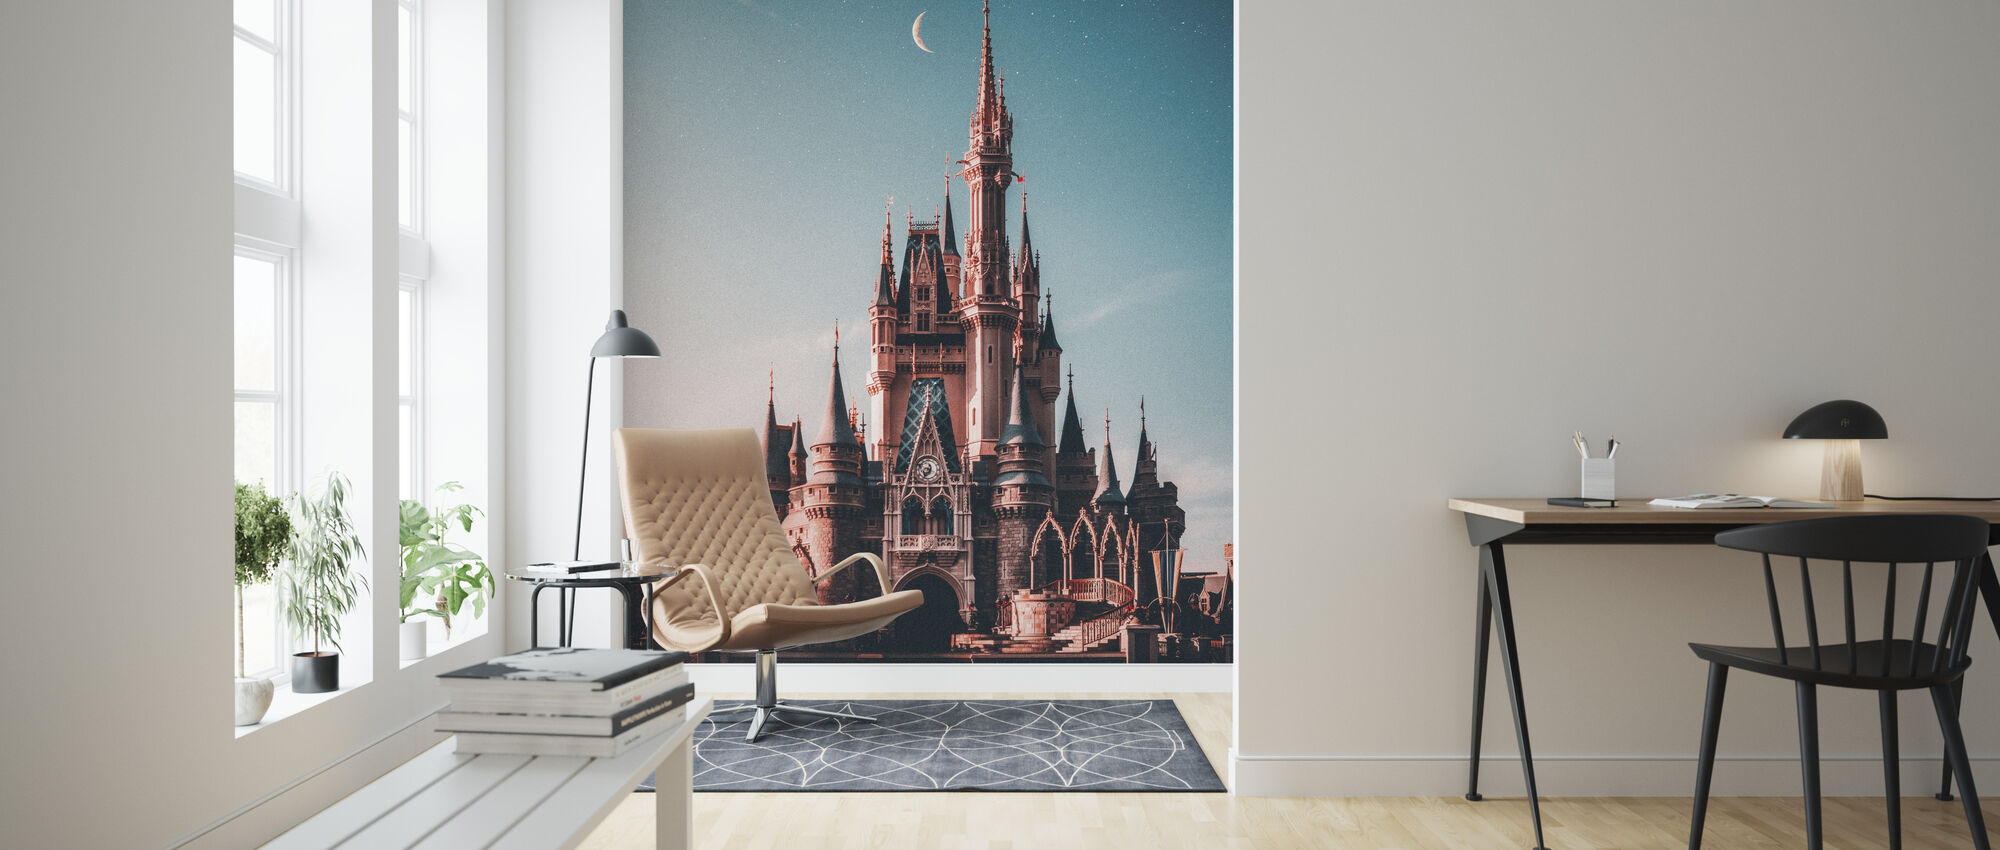 Diney Cinderella Castle - Wallpaper - Living Room